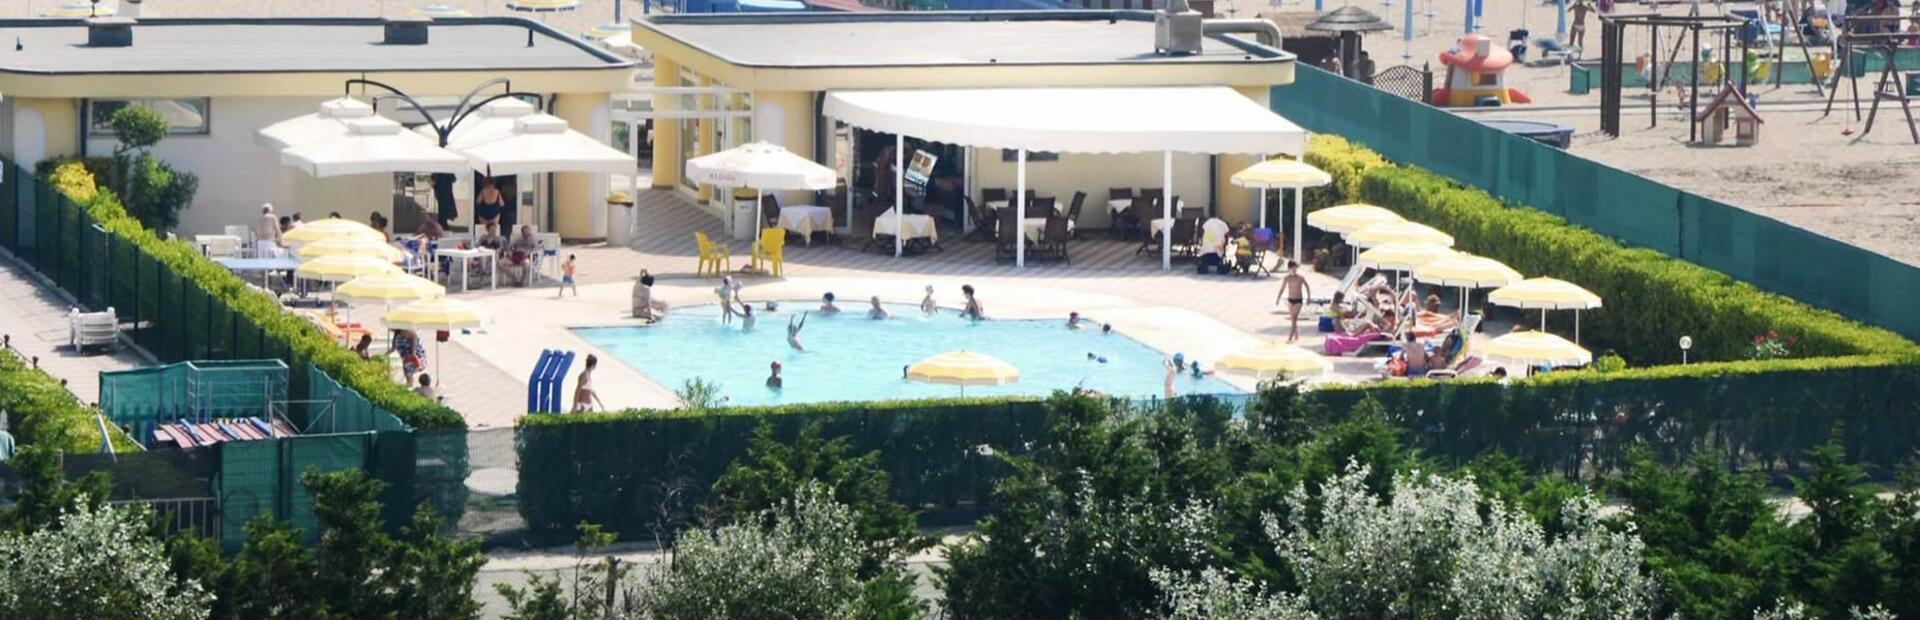 hotel-sole en pool-beach 001